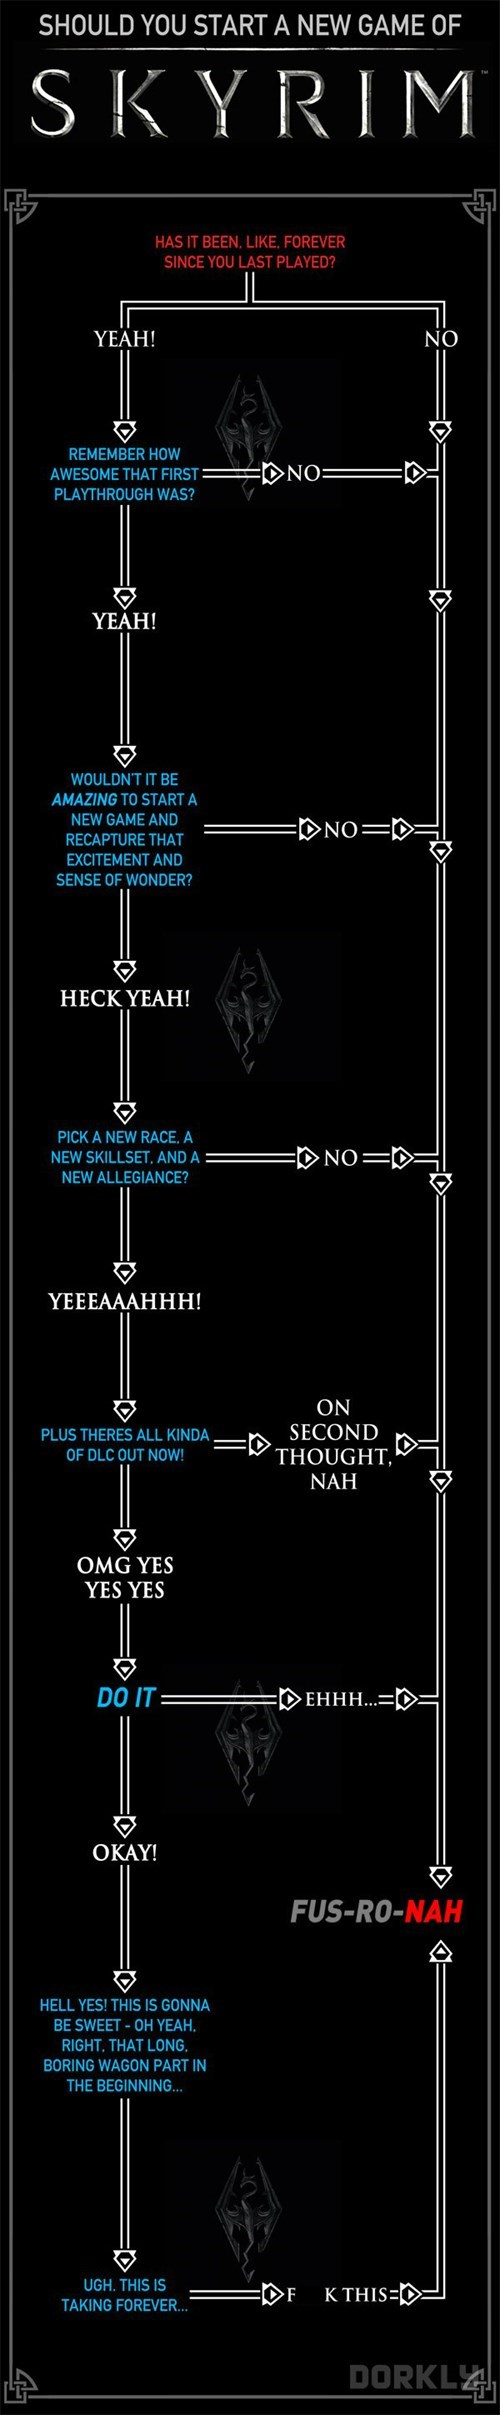 dorkly charts flowcharts video games Skyrim - 8085453568